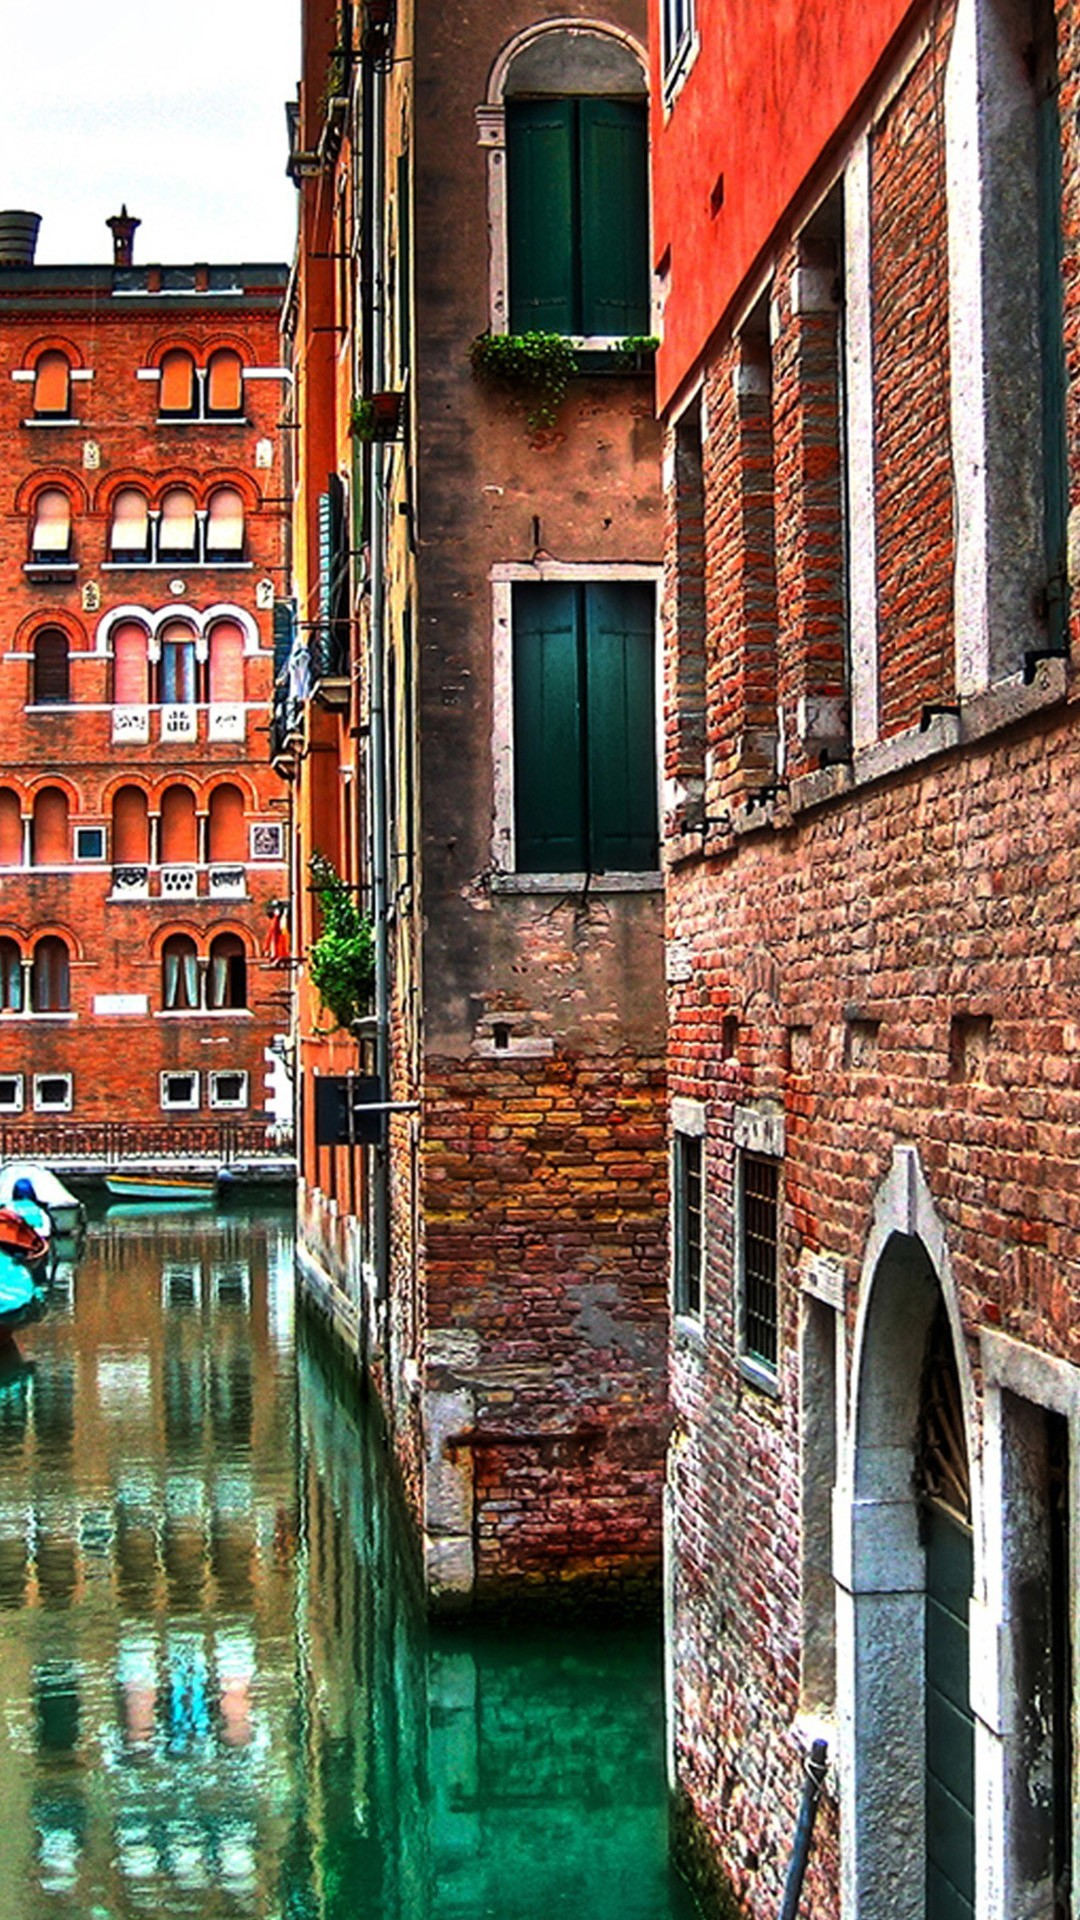 Architecture iPhone 6 Plus Wallpapers – Venice Street Buildings Red Brick  iPhone 6 Plus HD Wallpaper